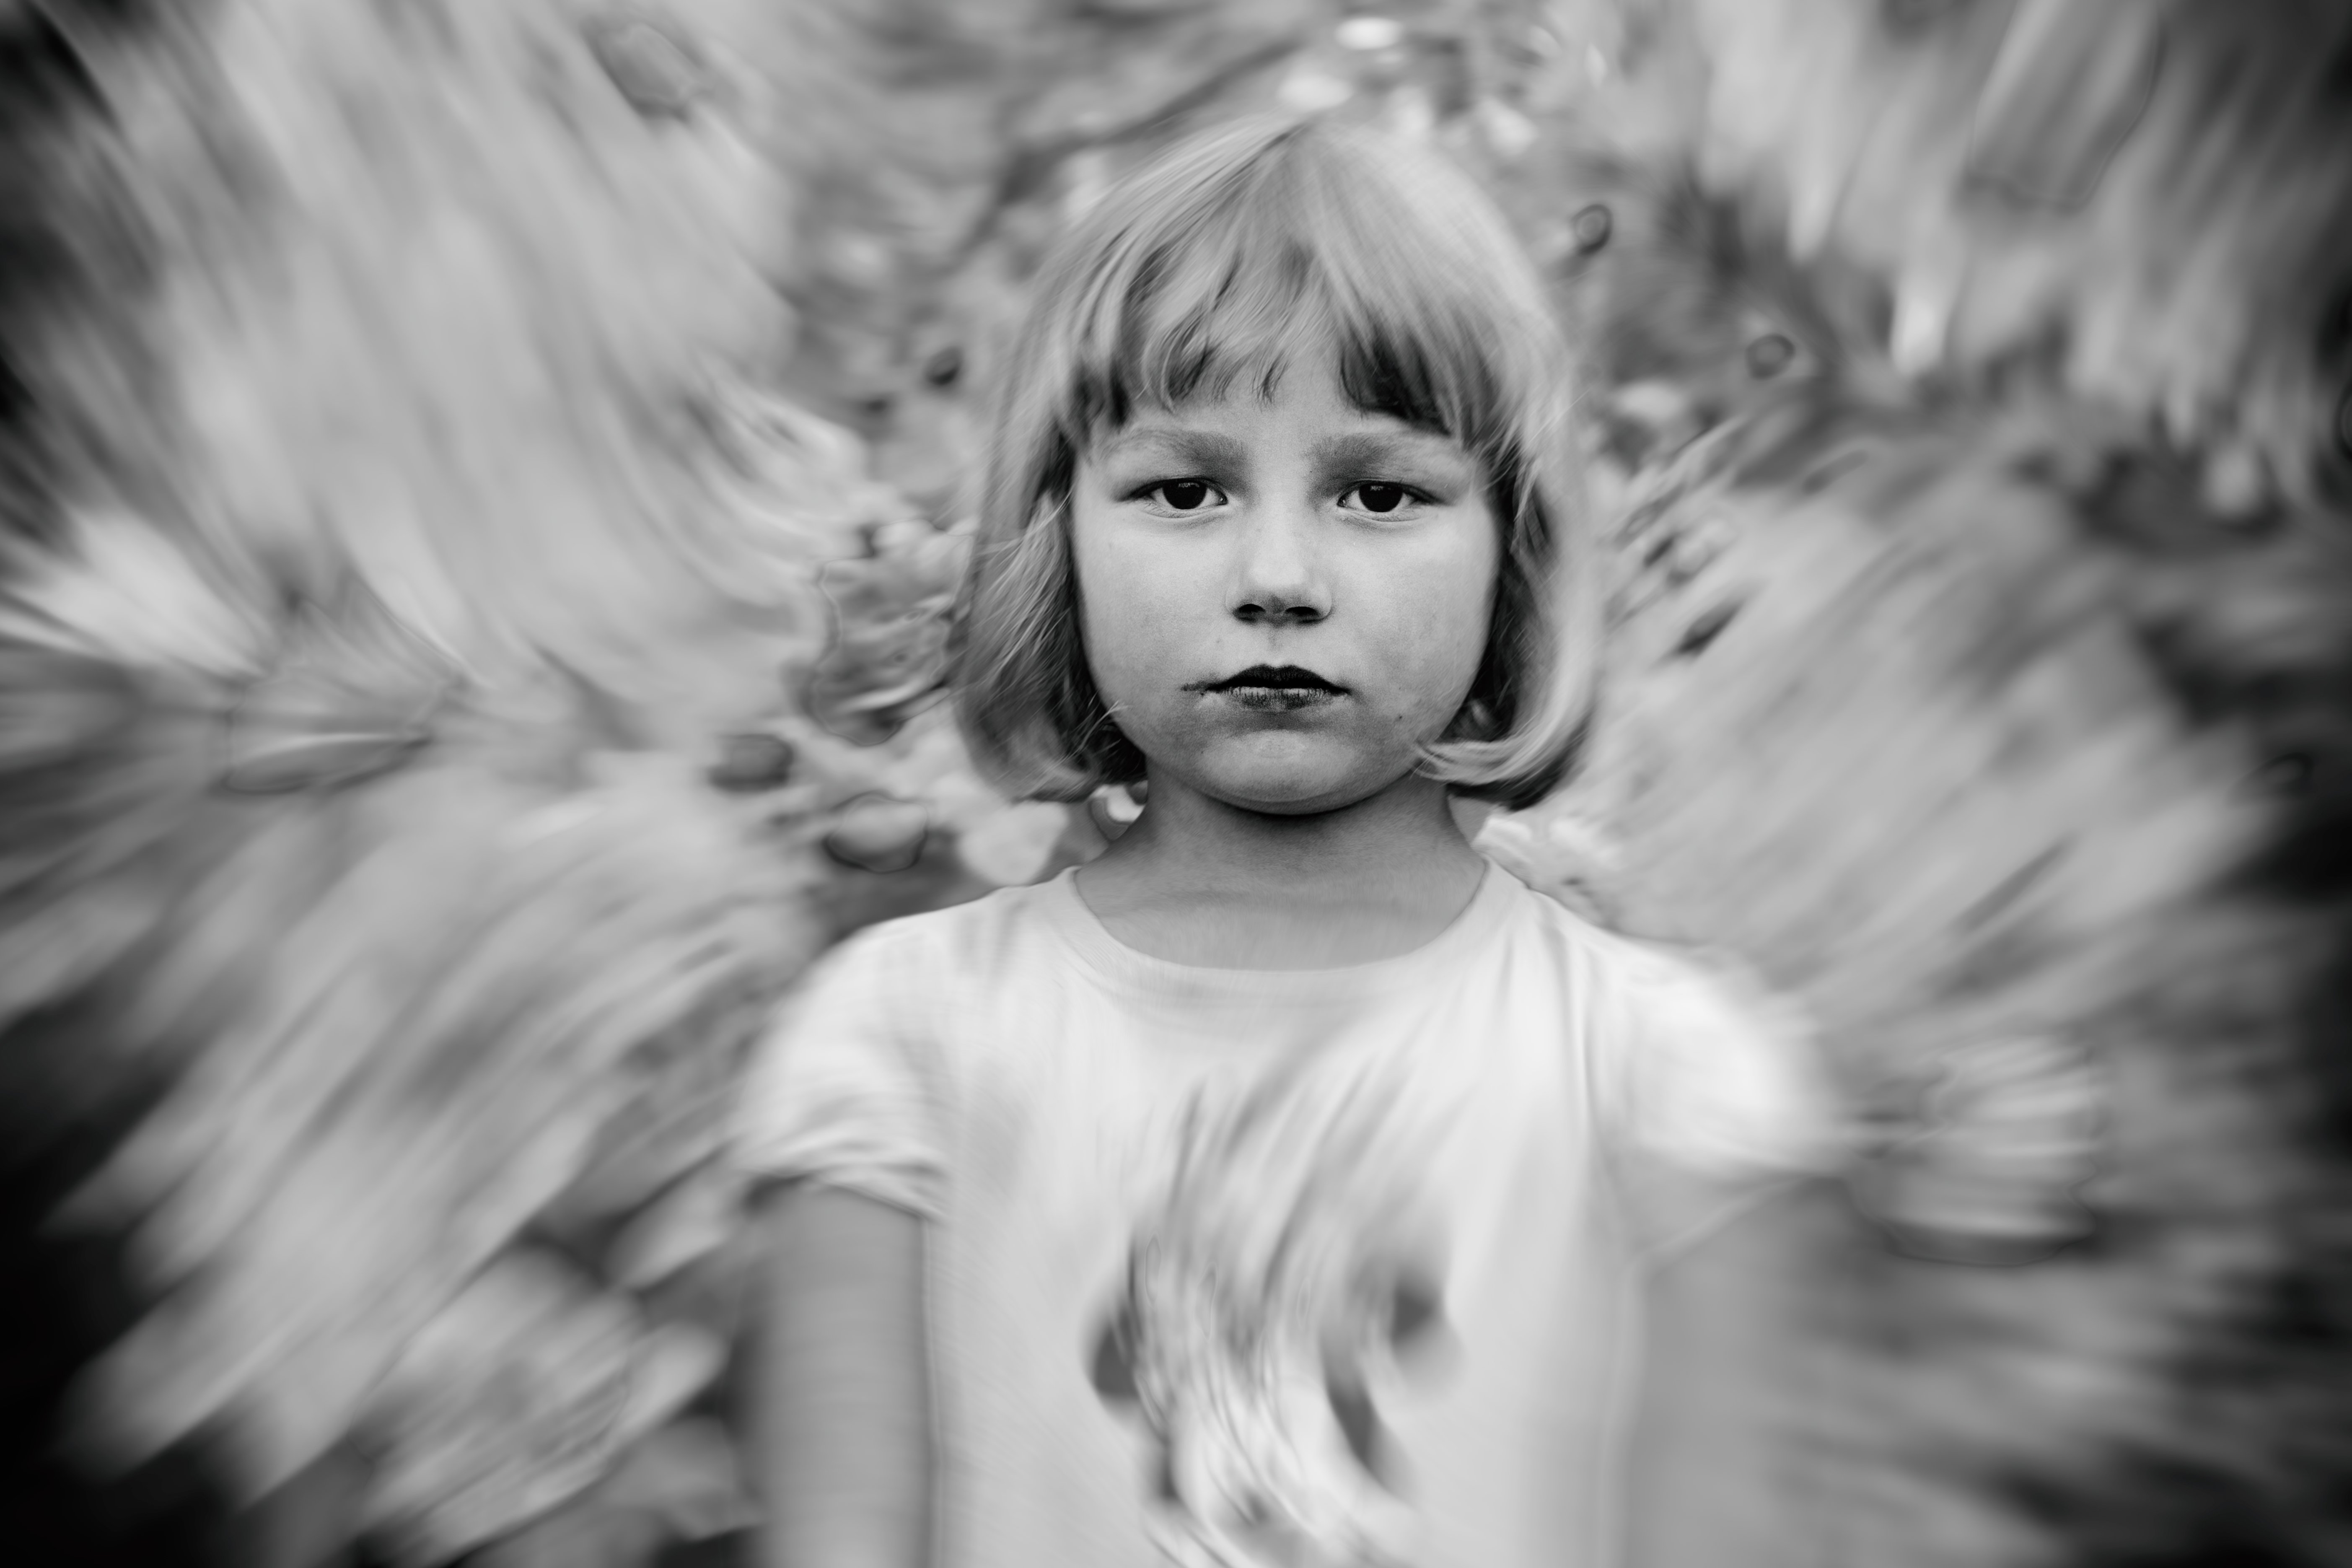 Tomislav Stajduhar: 'swirl girl', 2017 Black and White Photograph, People. Artist Description: Portrait of a young girl caught in a visual swirl. ...